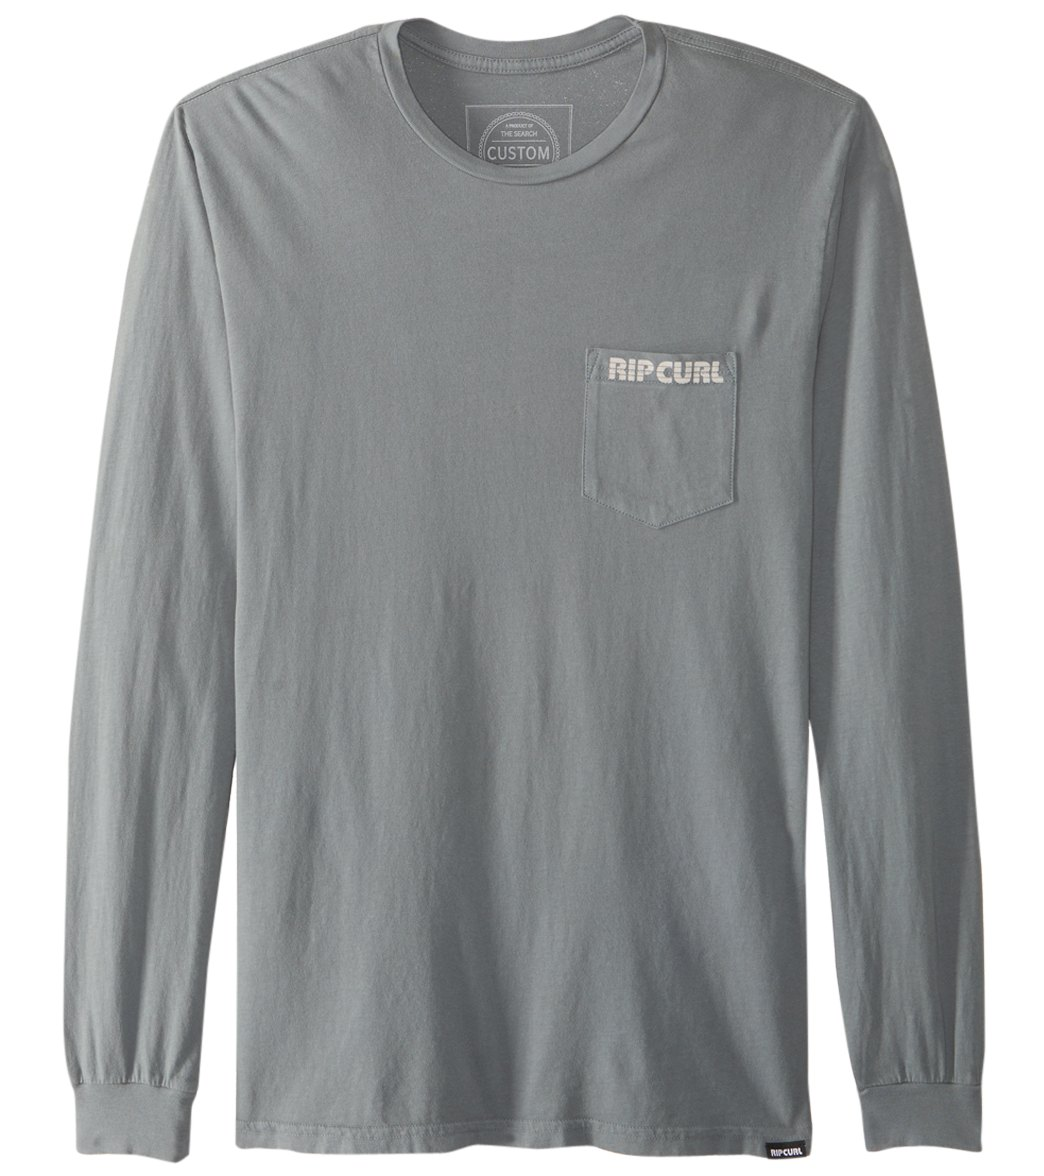 ce7ef5e08 Rip Curl Men's Corpo Pump Heritage Long Sleeve Tee at SwimOutlet.com